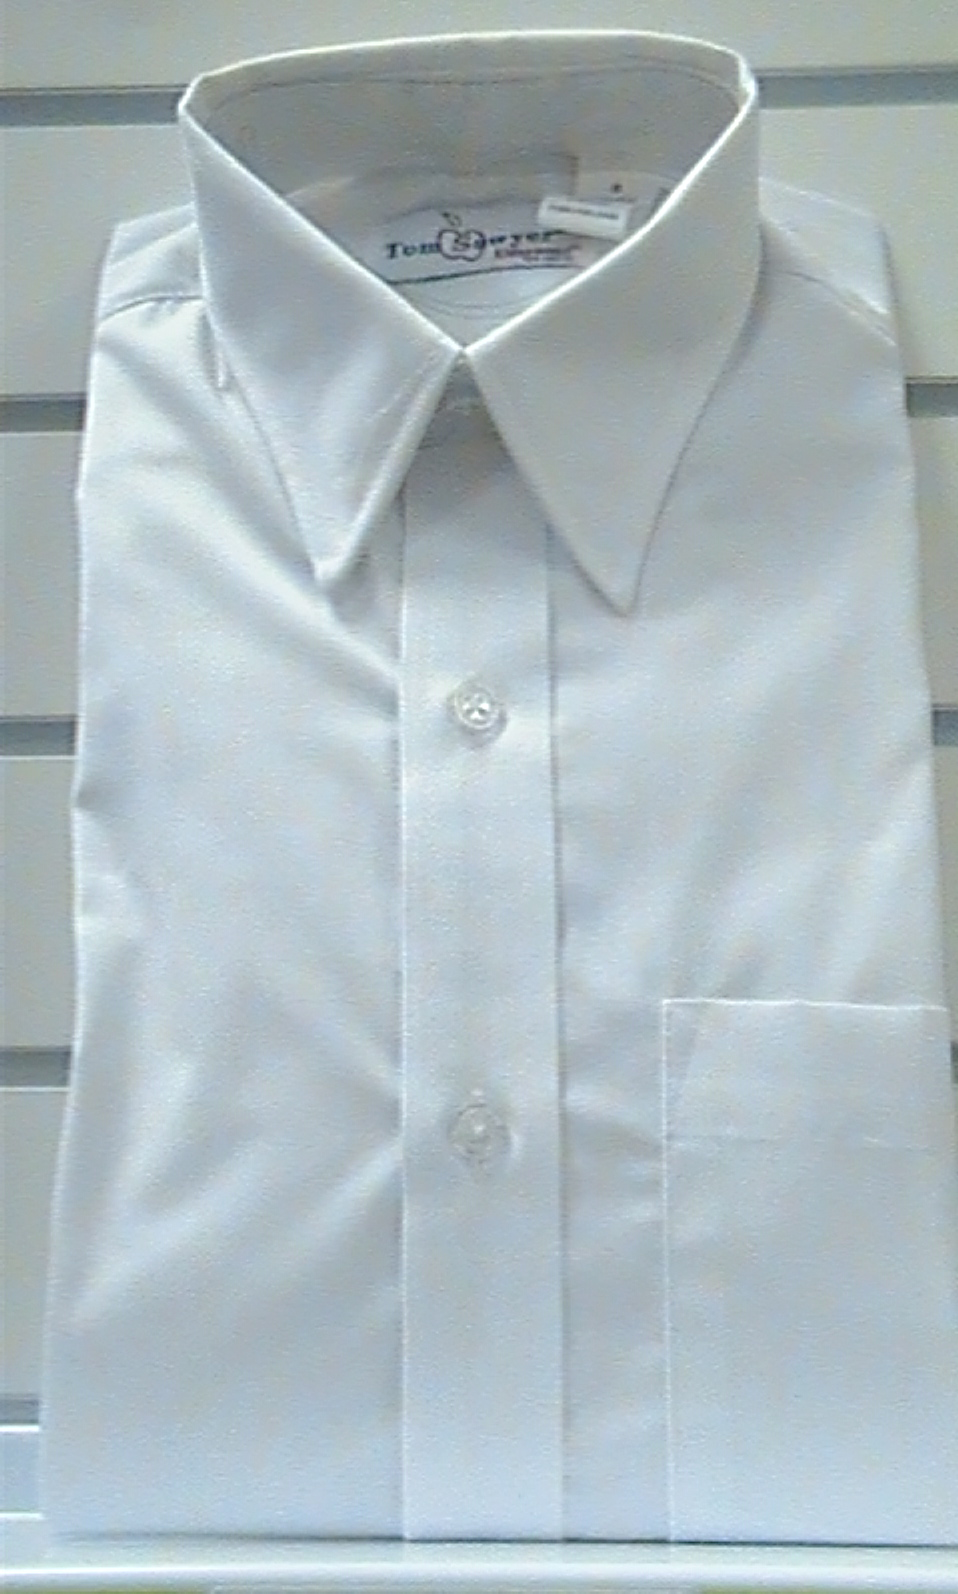 WhiteLong SleeveBroadcloth Shirt